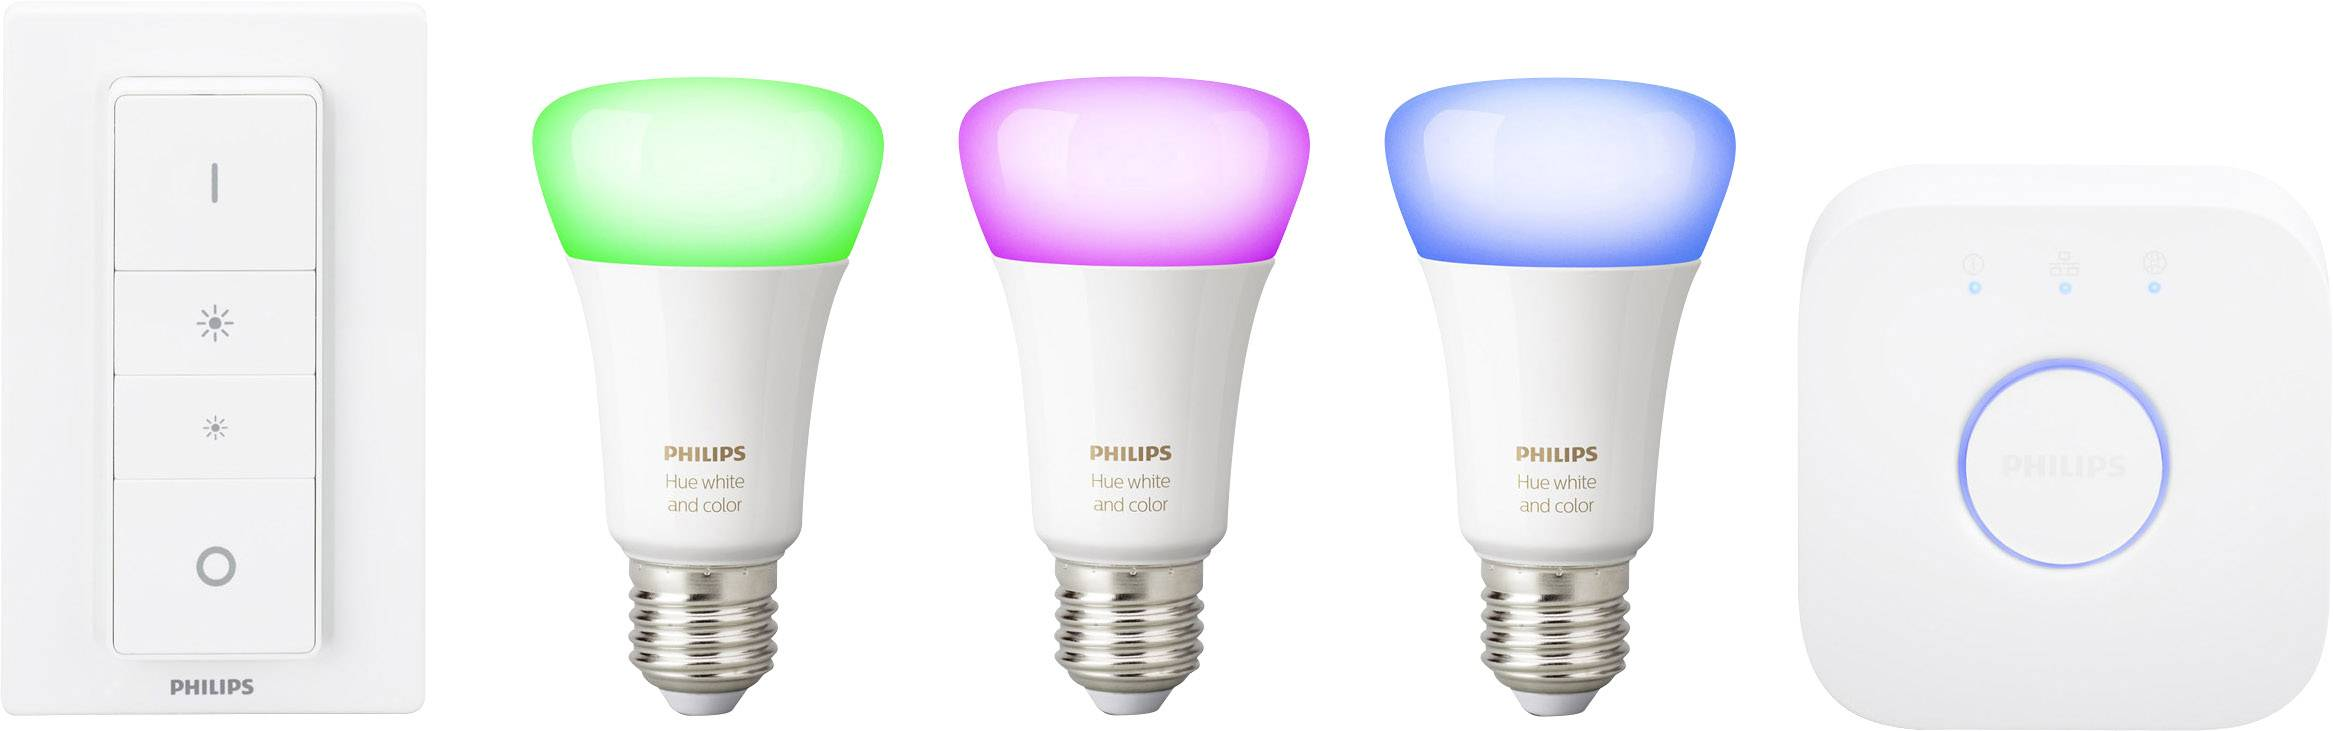 Philips Hue Starter Pack.Philips Lighting Hue Starter Kit White And Color Ambiance E27 10 W